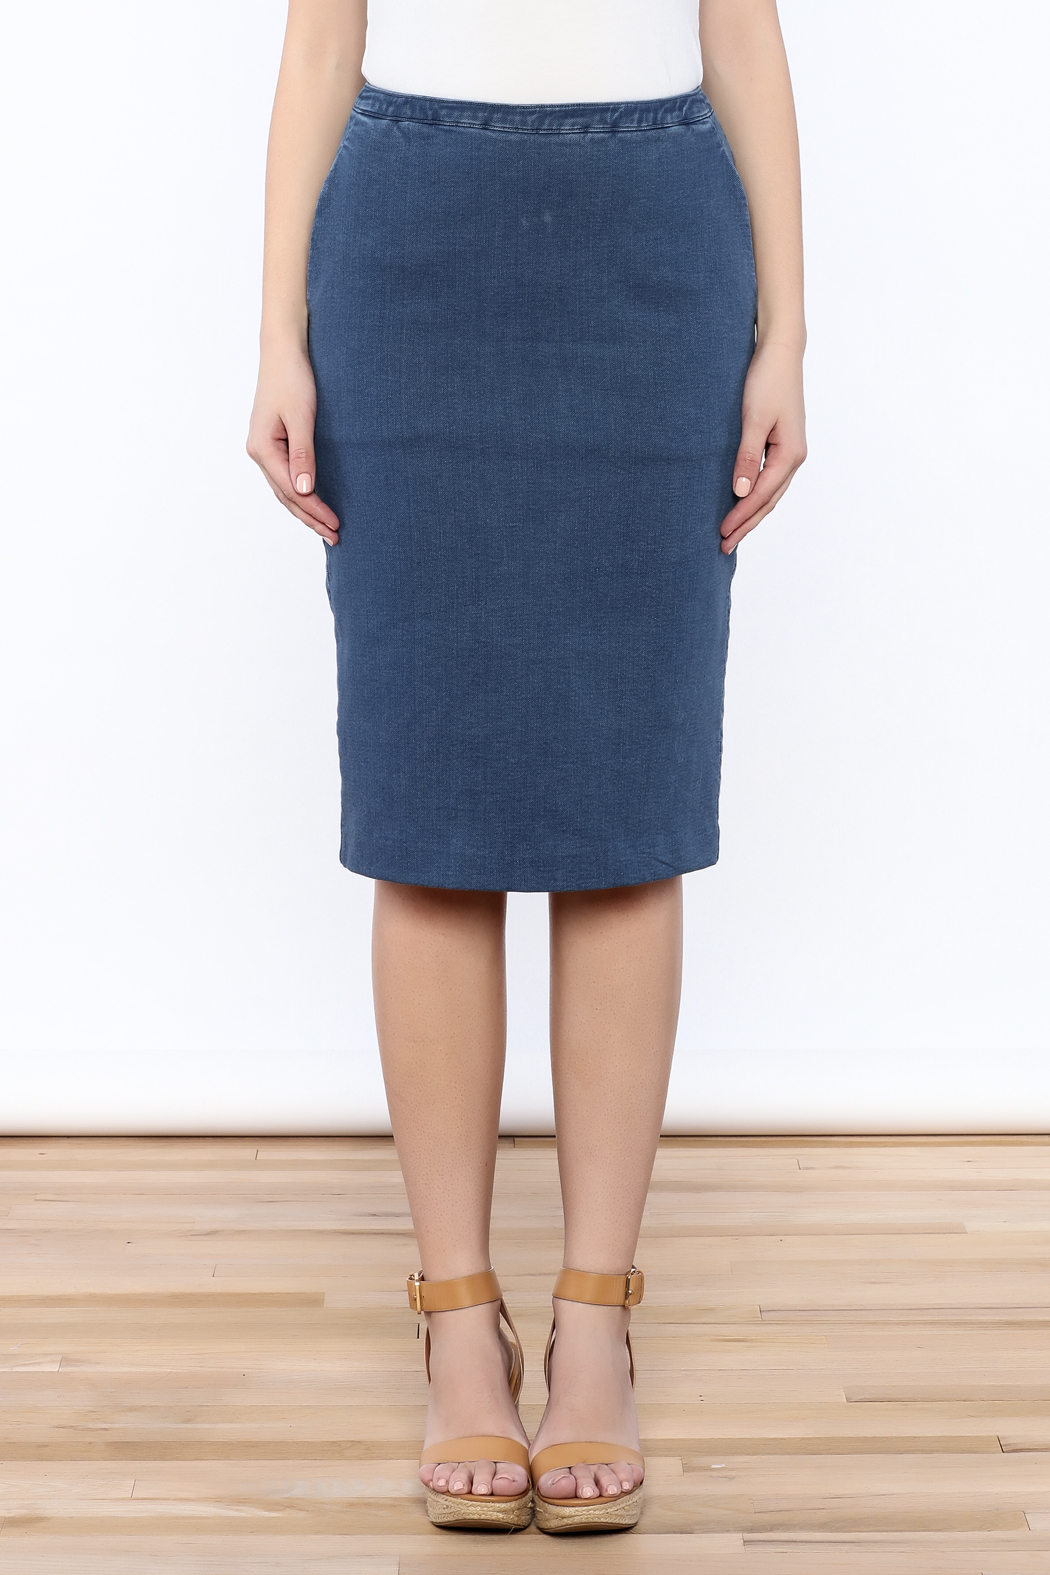 how to wear denim pencil skirt